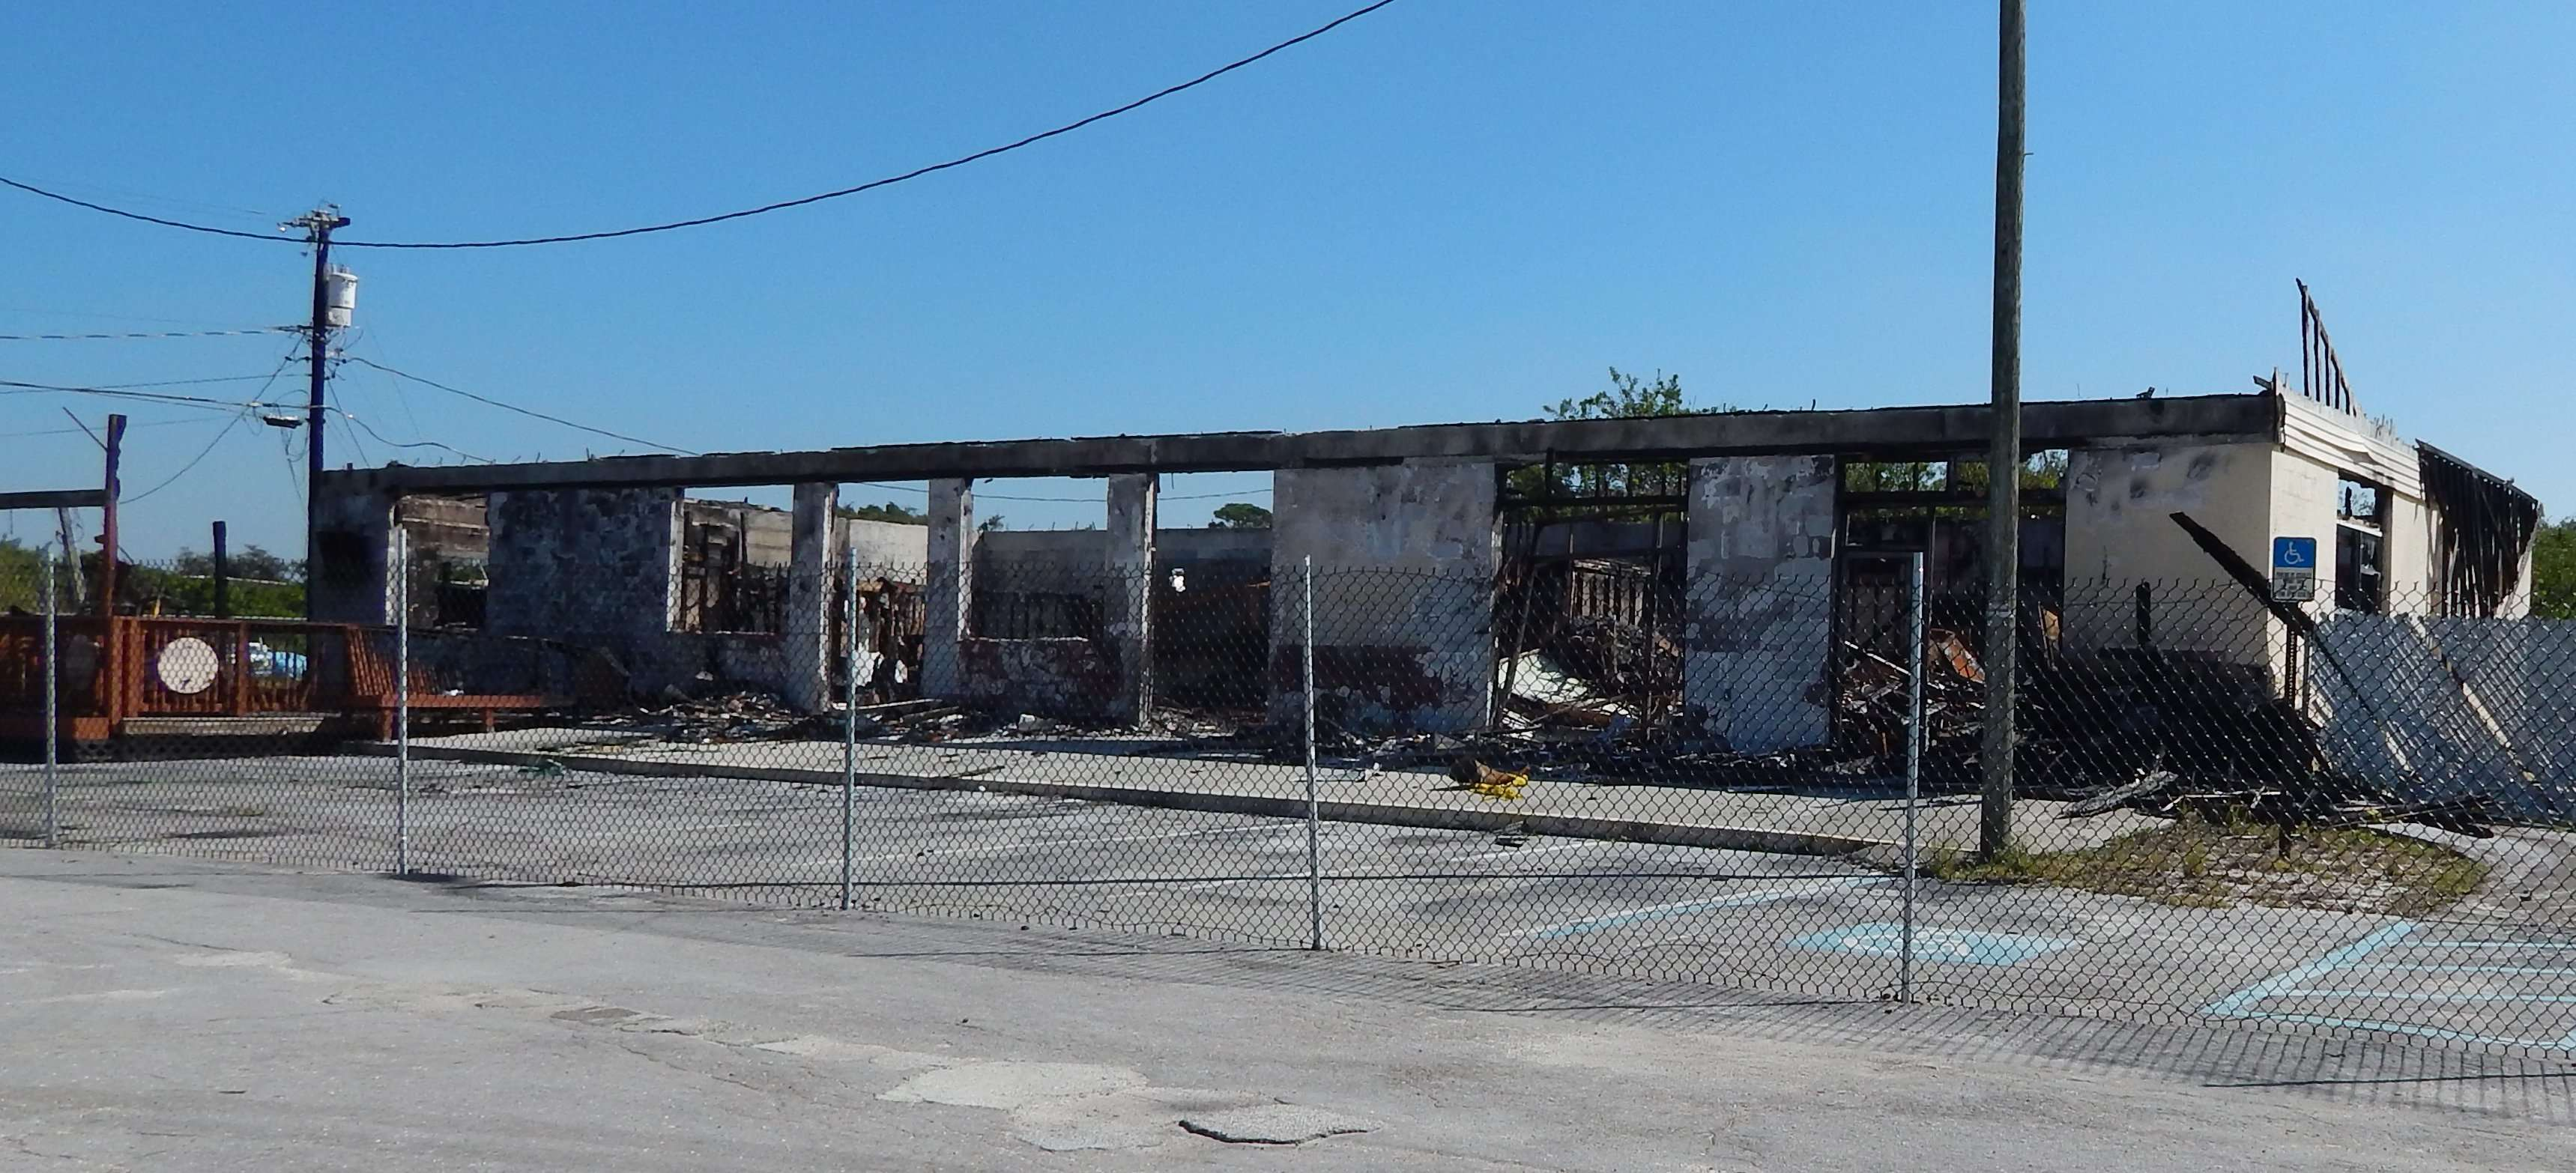 Shenaniganz Grill and Chill burnt down due to arson now surrounded by fence on U.S. 41 in Apollo Beach, FL